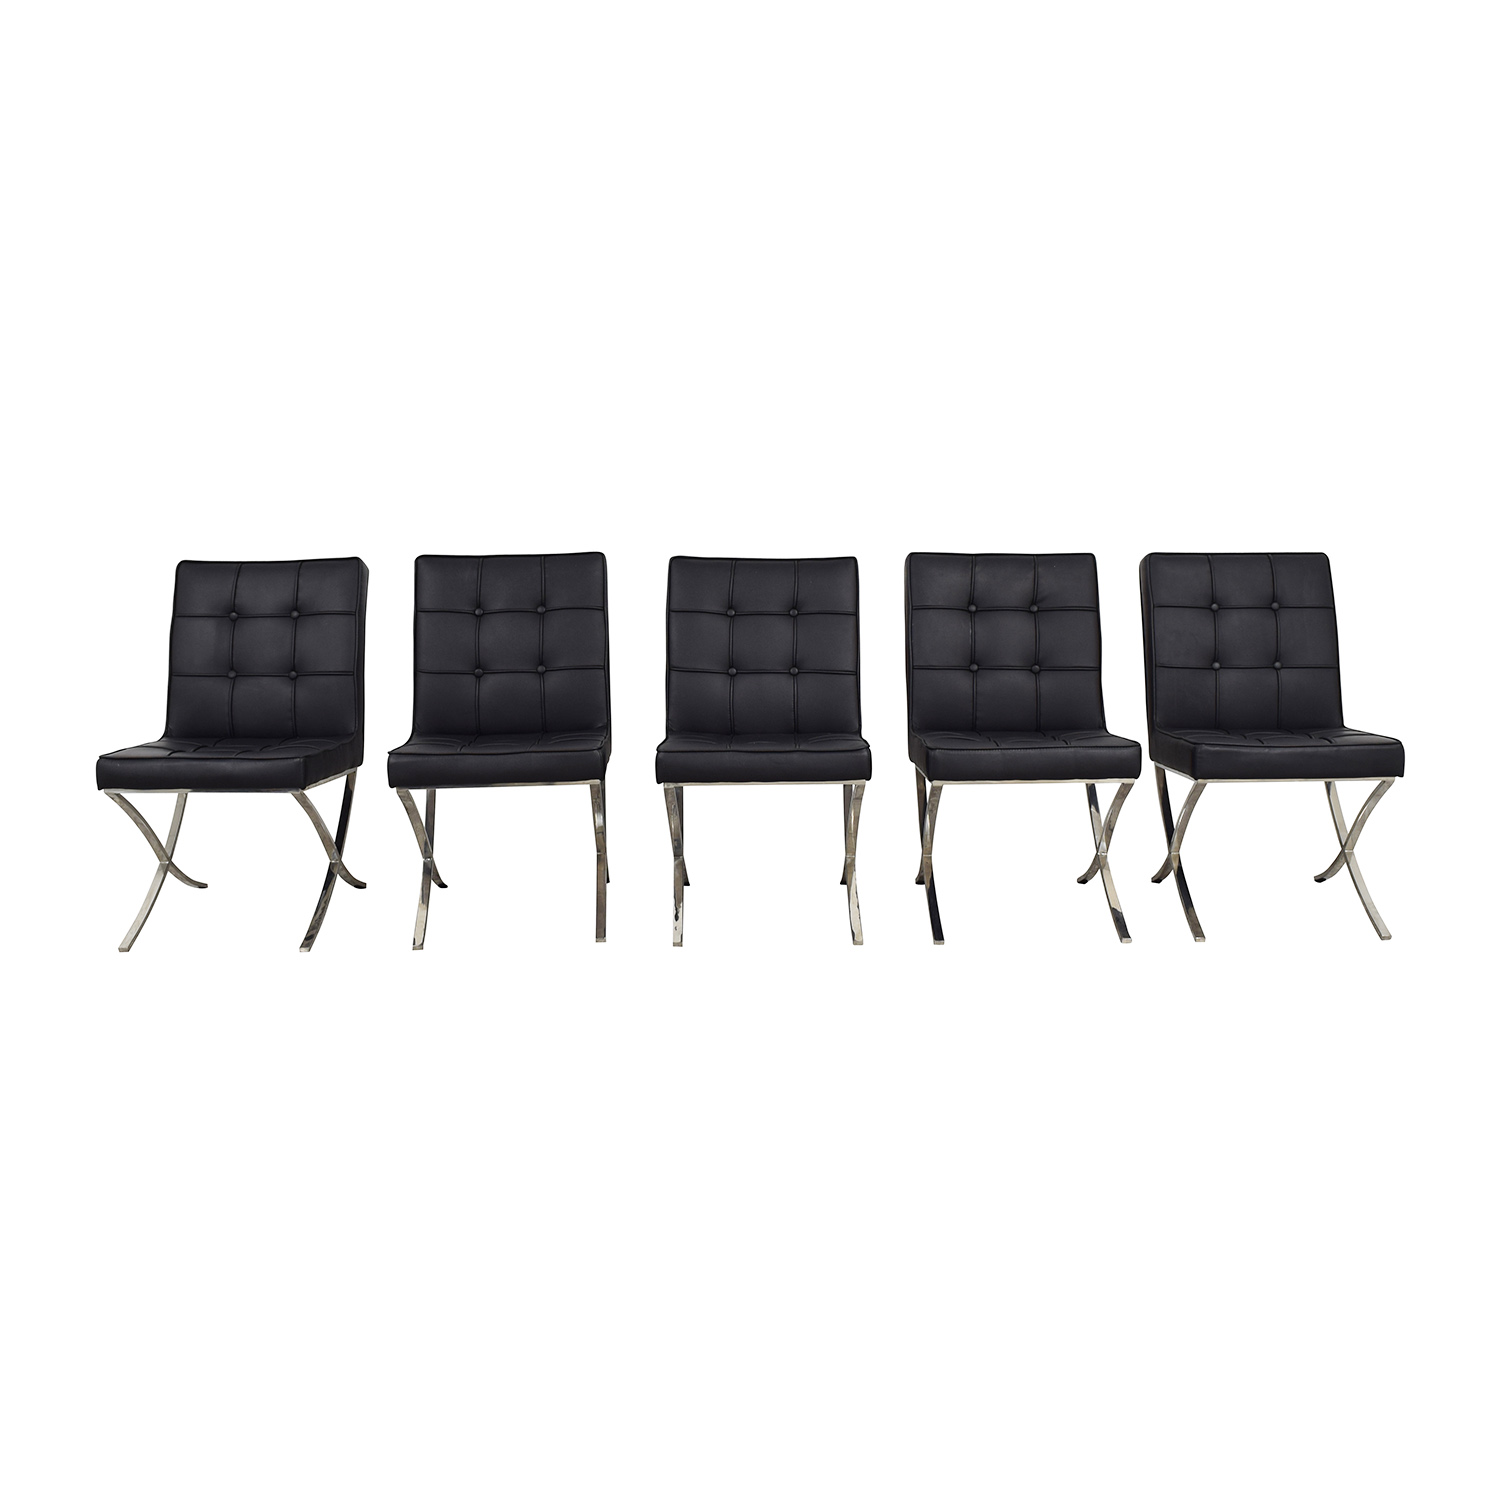 shop West Elm Black Tufted Leather Chairs West Elm